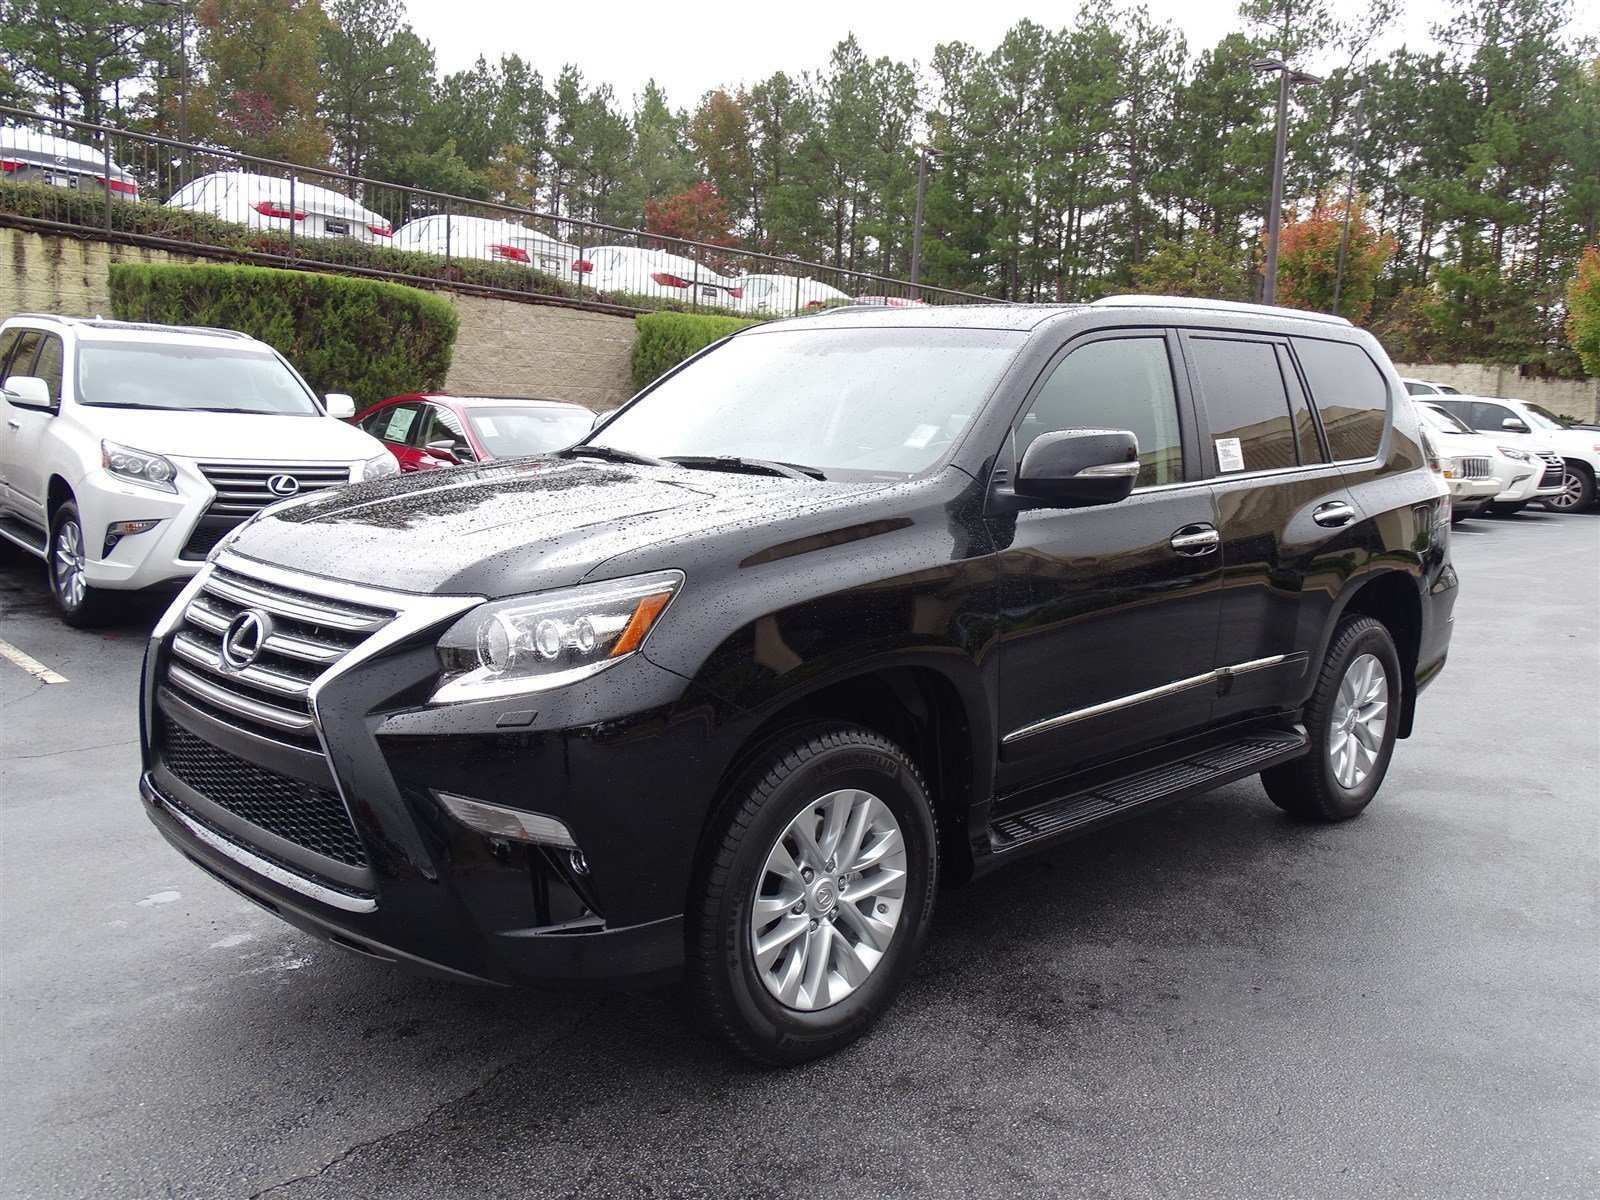 35 Great 2019 Lexus Gx Spy Photos Rumors by 2019 Lexus Gx Spy Photos